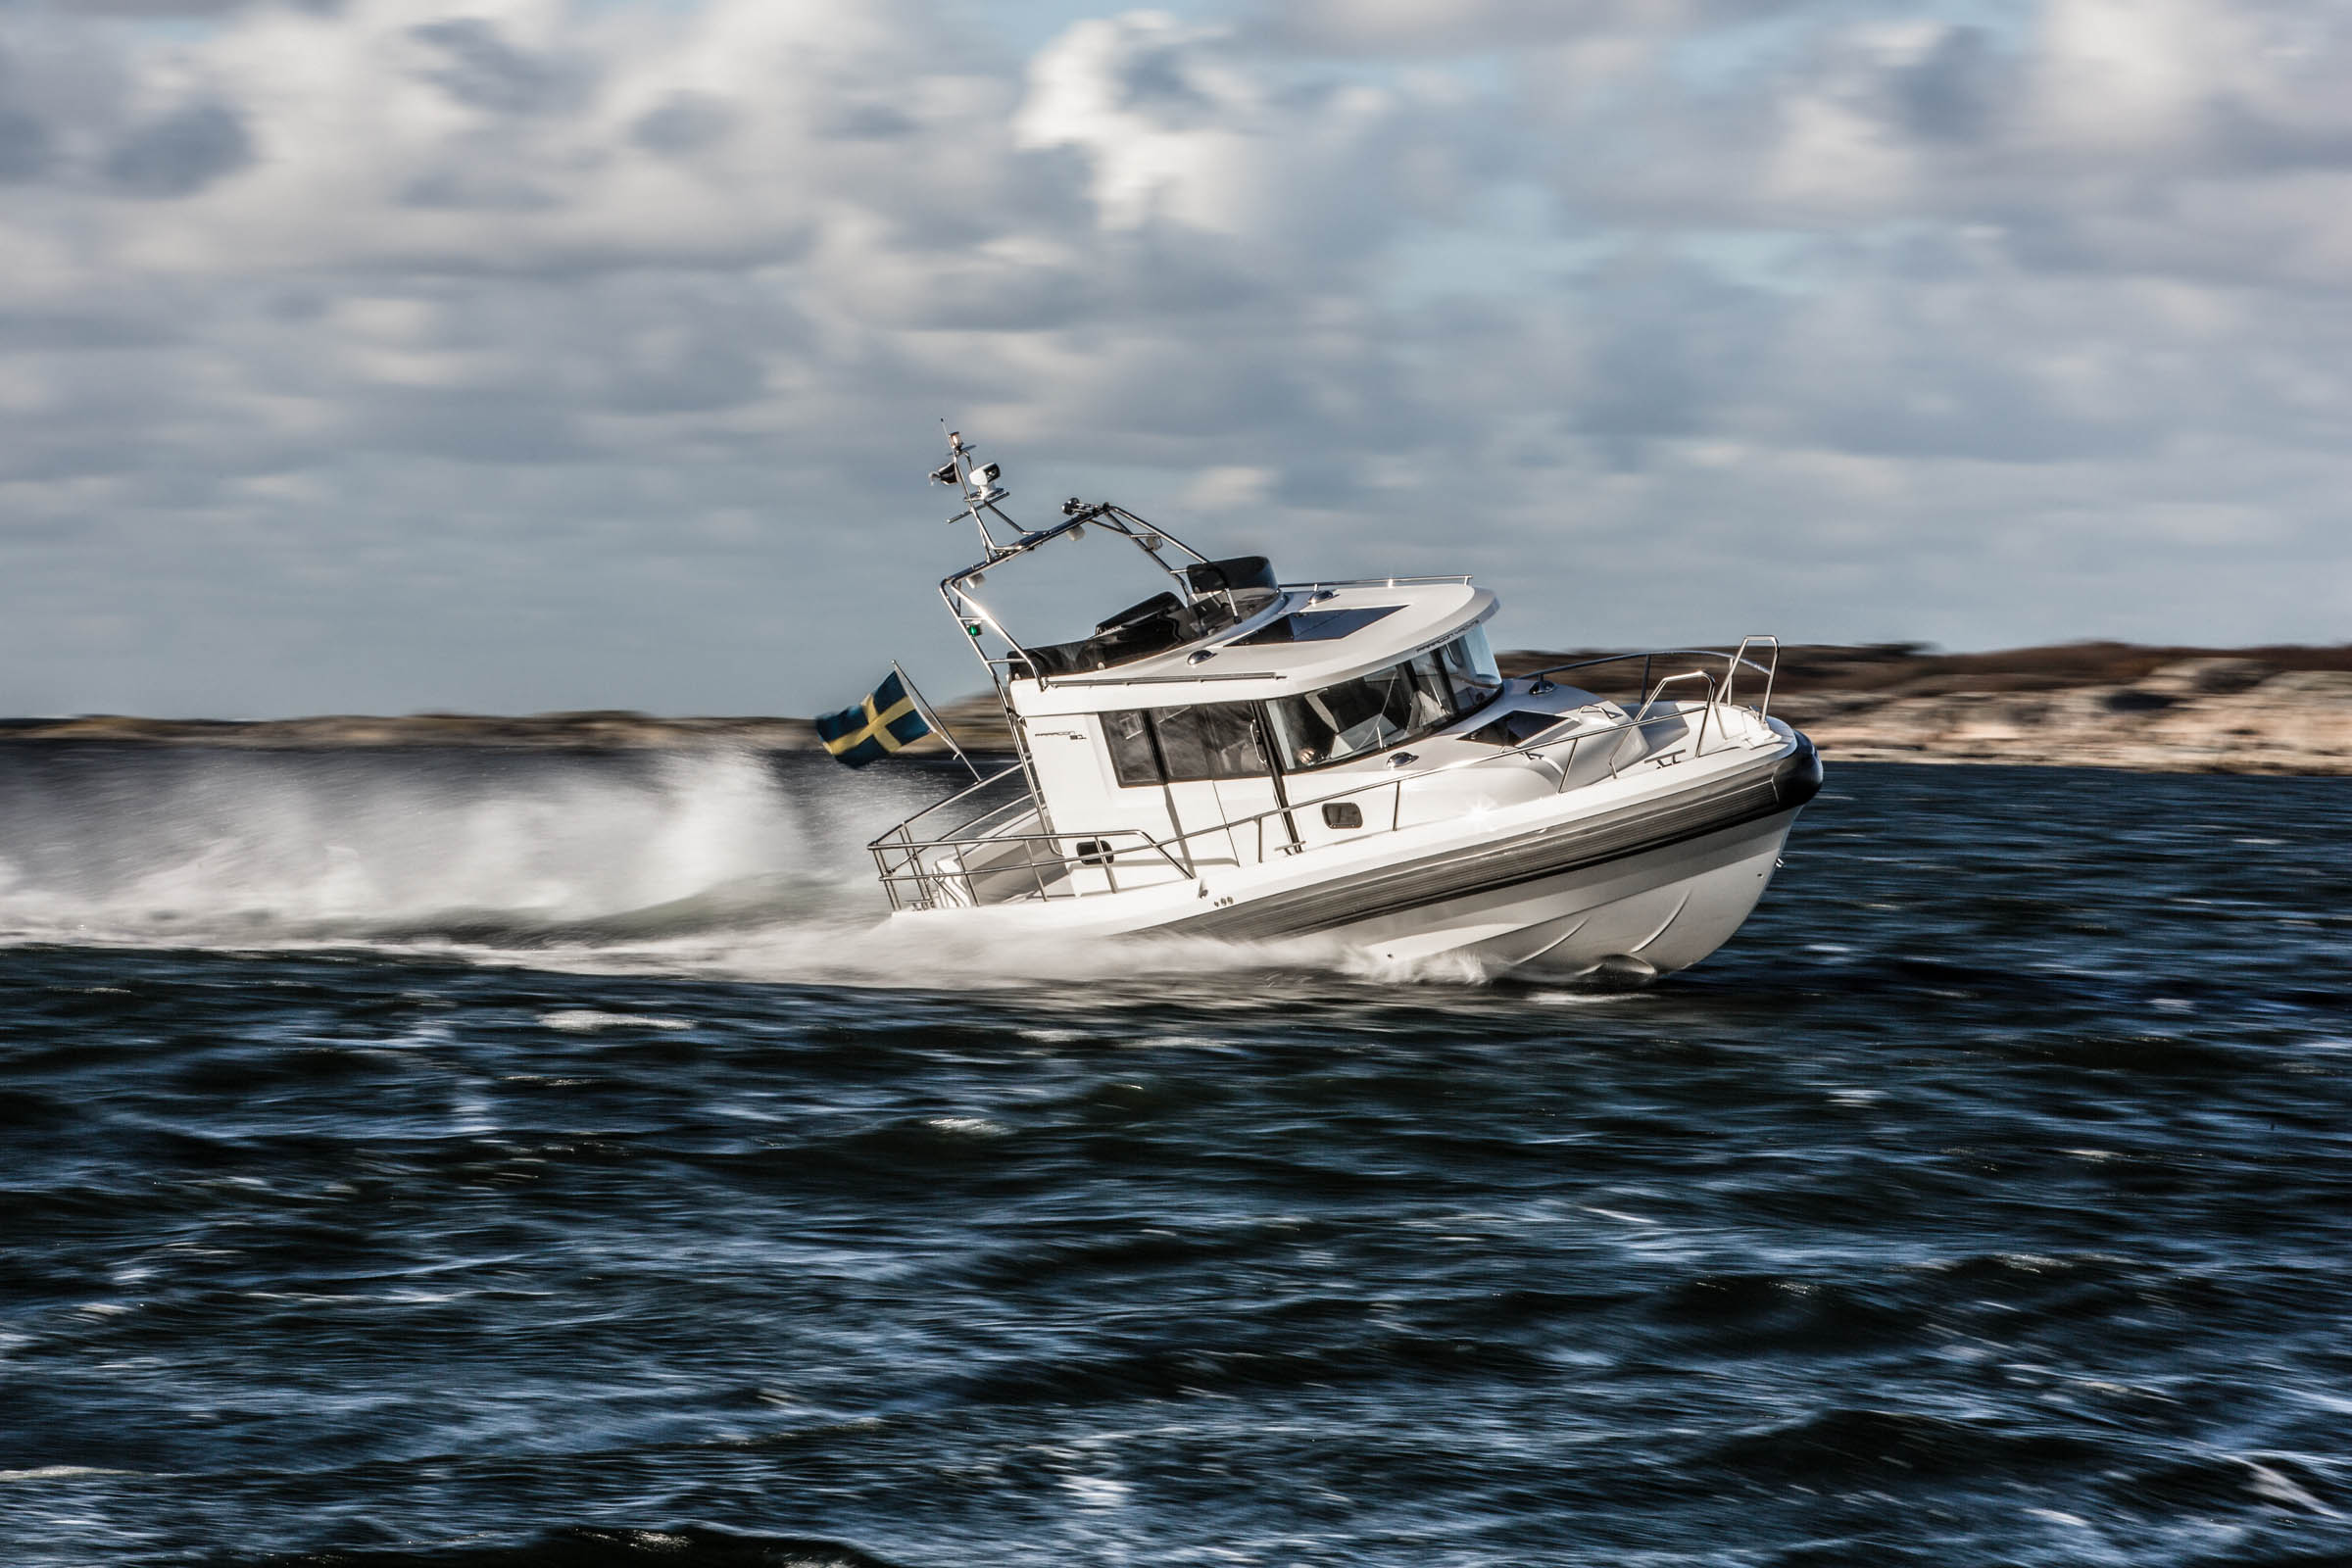 Paragon 31 driving fast on the water, close to the land or an island